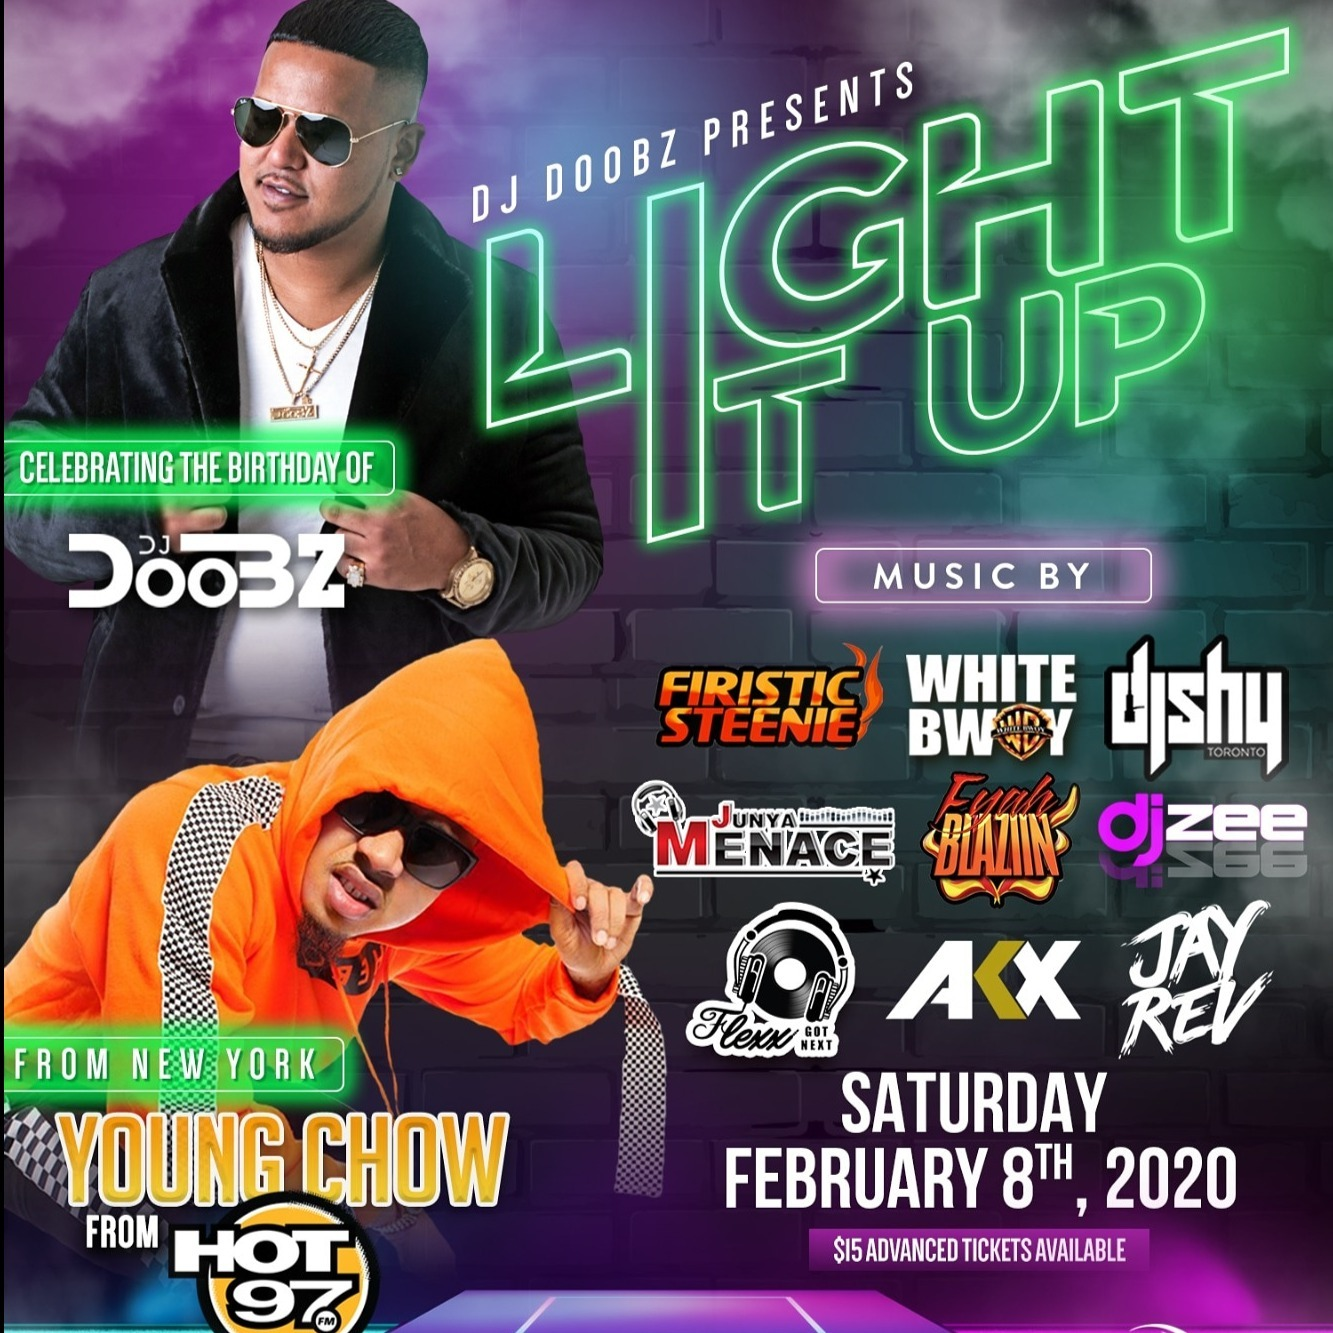 LIGHT IT UP Feat YOUNG CHOW from HOT 97